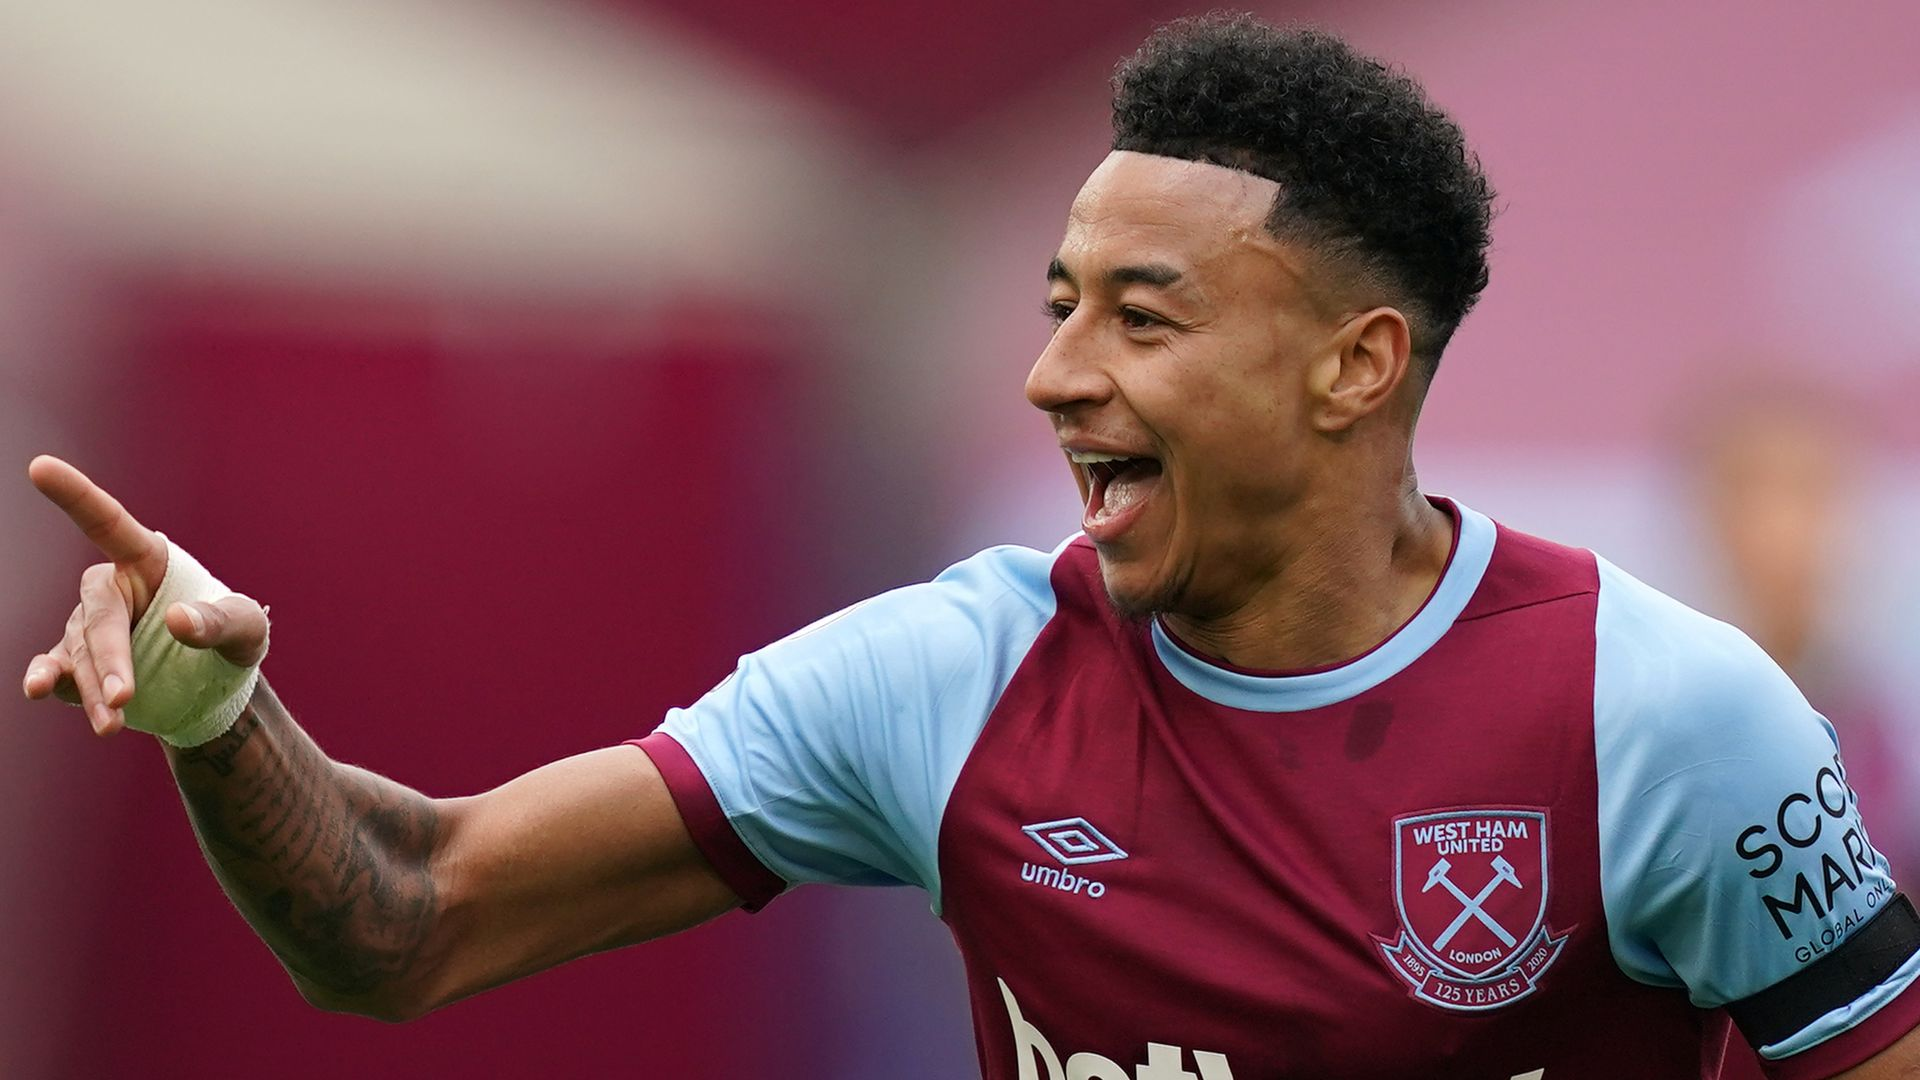 West Ham believe just '10 per cent' chance of signing Lingard